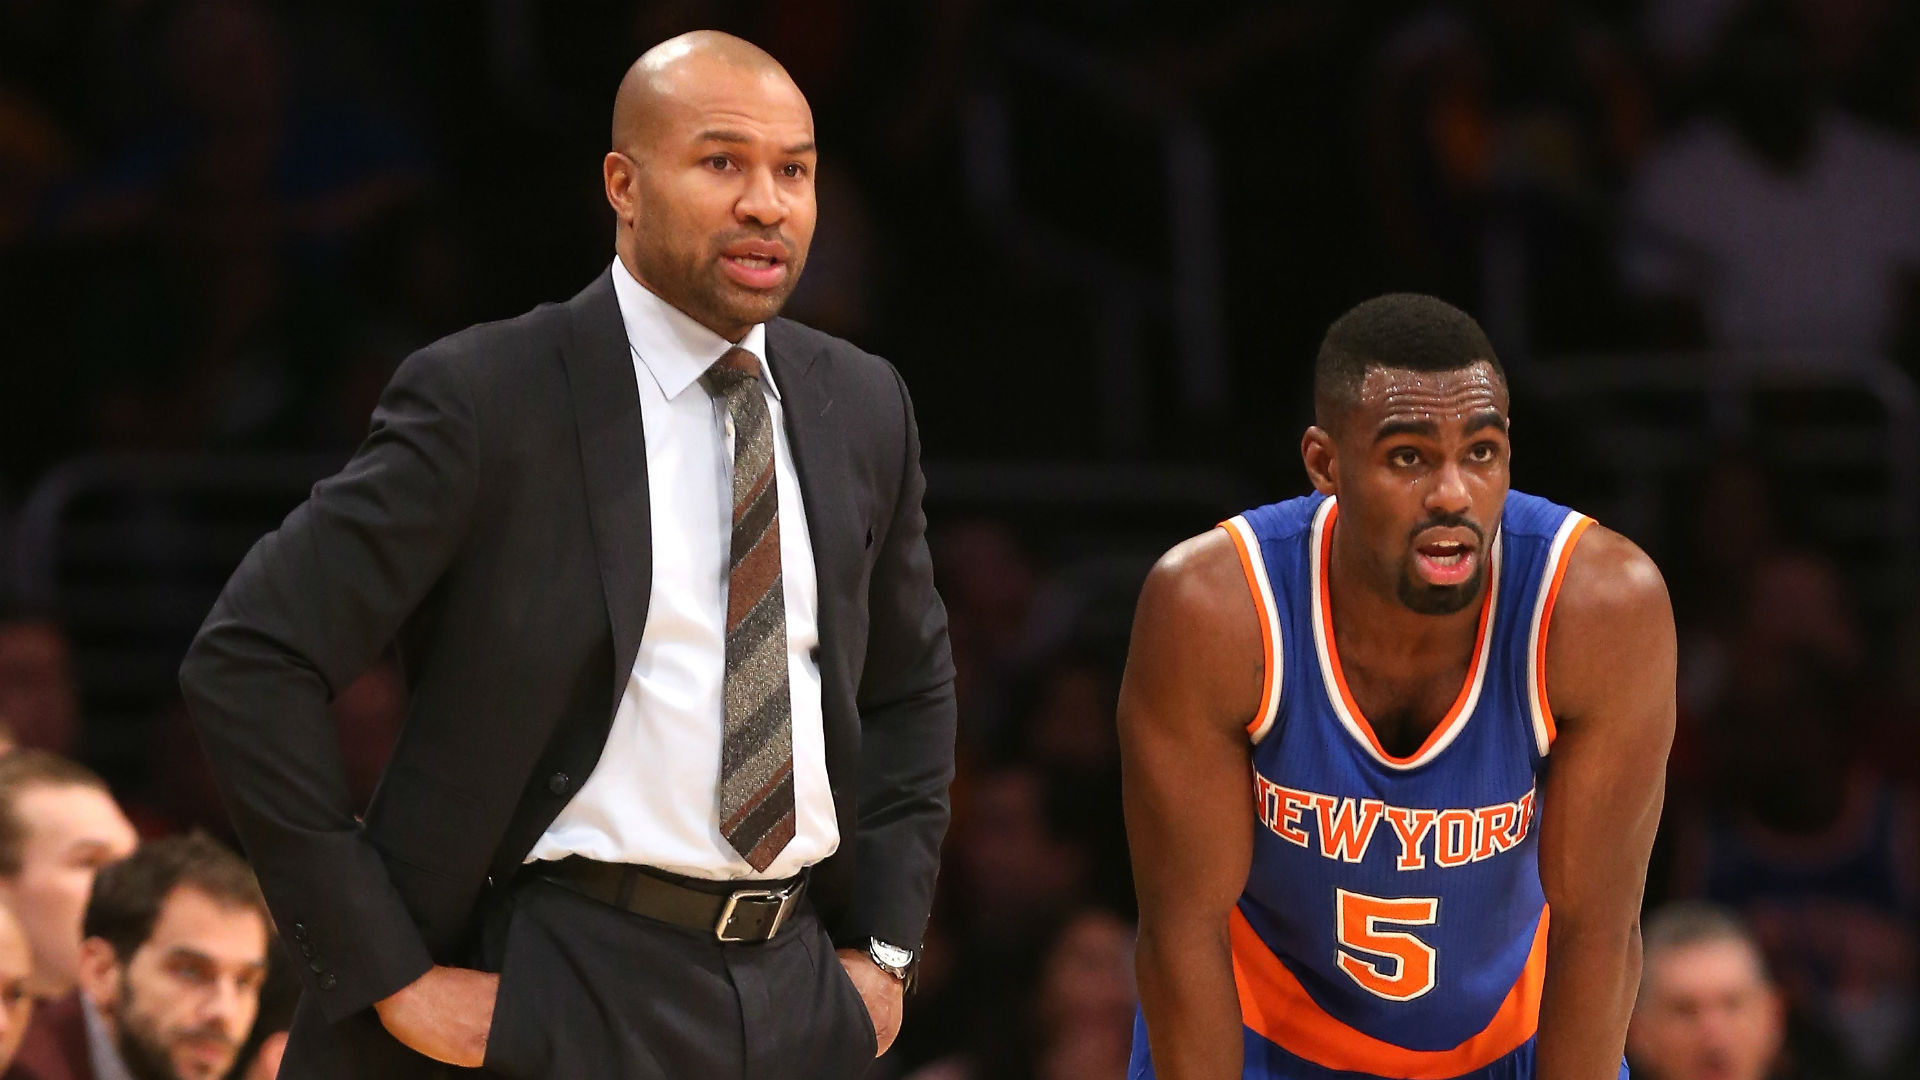 Derek Fisher claims he got more out of a less talented Knicks team